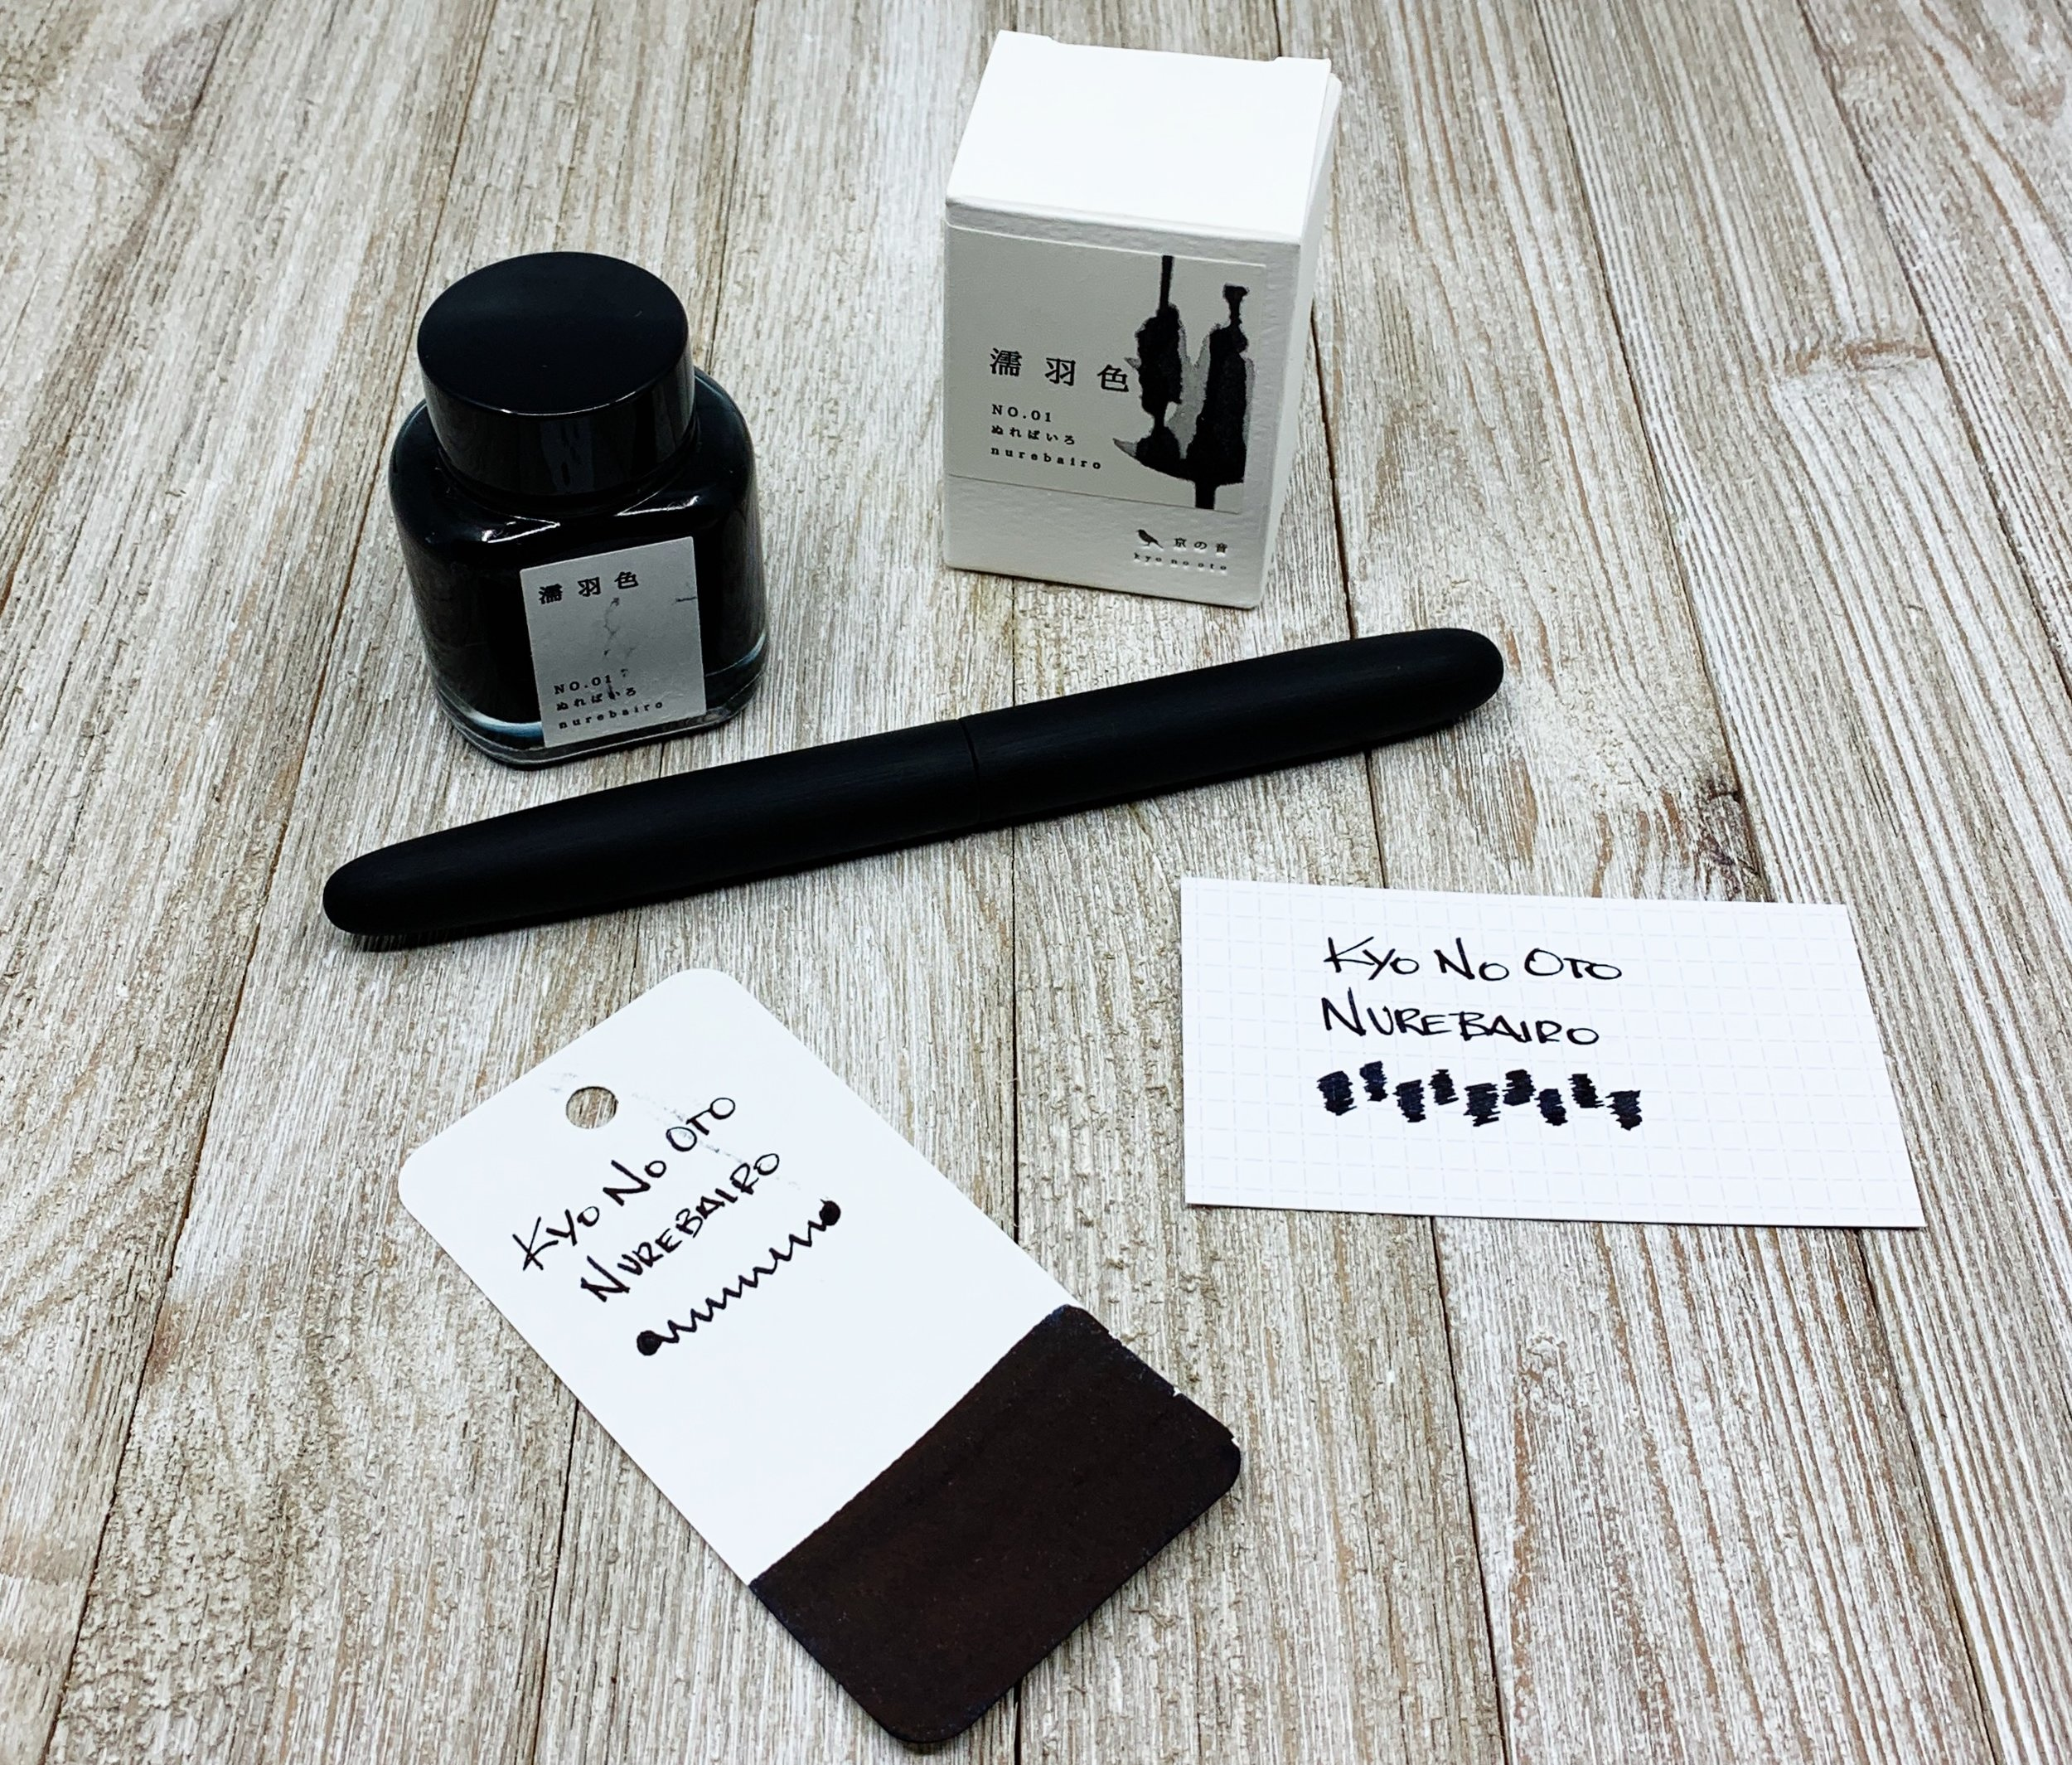 Kyo No Oto Nurebairo Ink Review